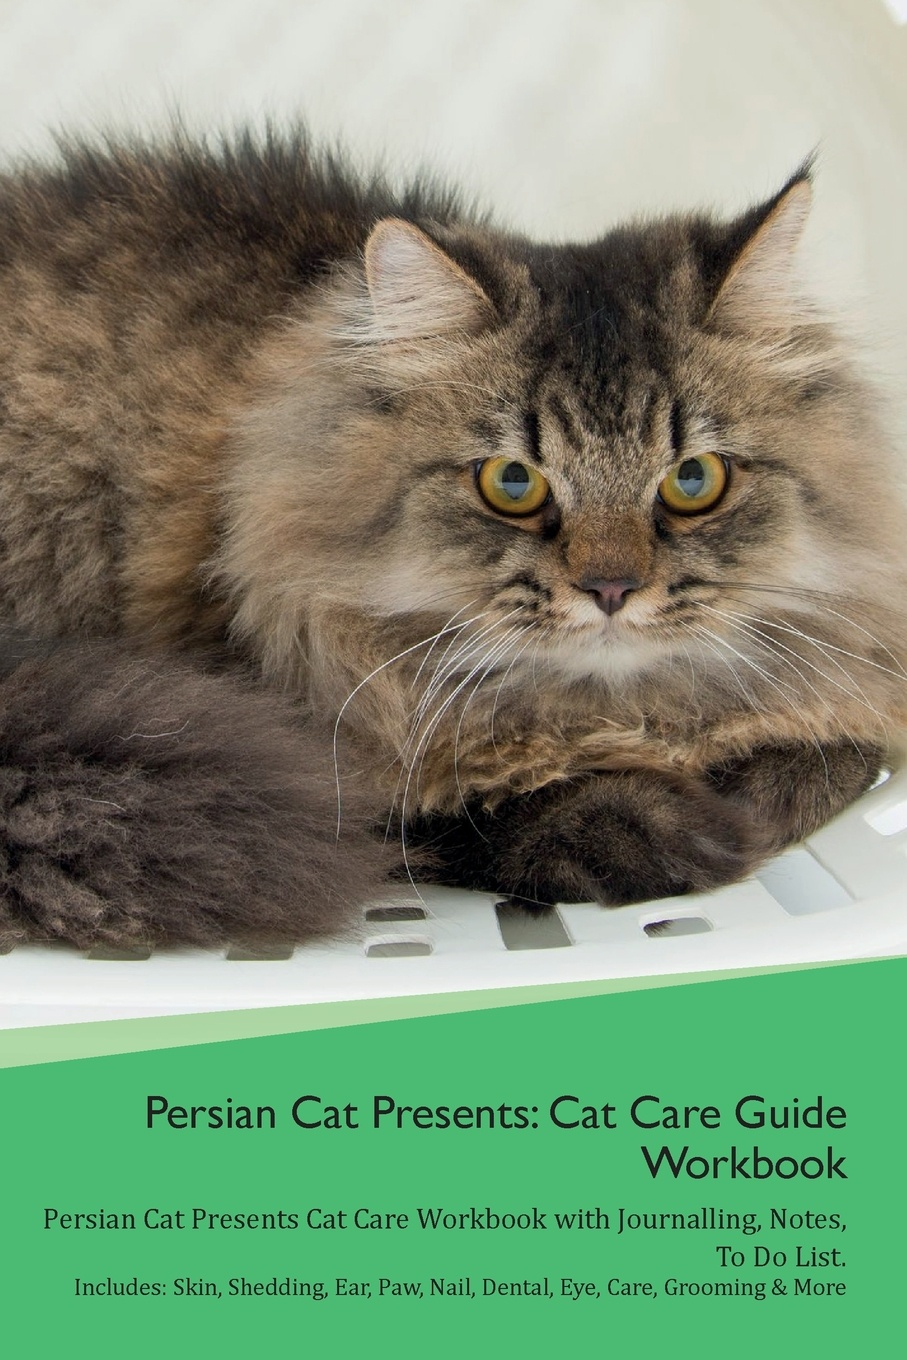 Productive Cat Persian Presents. Care Guide Workbook Presents with Journalling, Notes, To Do List. Includes: Skin, Shedding, Ear, Paw, Nail, Dental, Eye, Care, Grooming & More